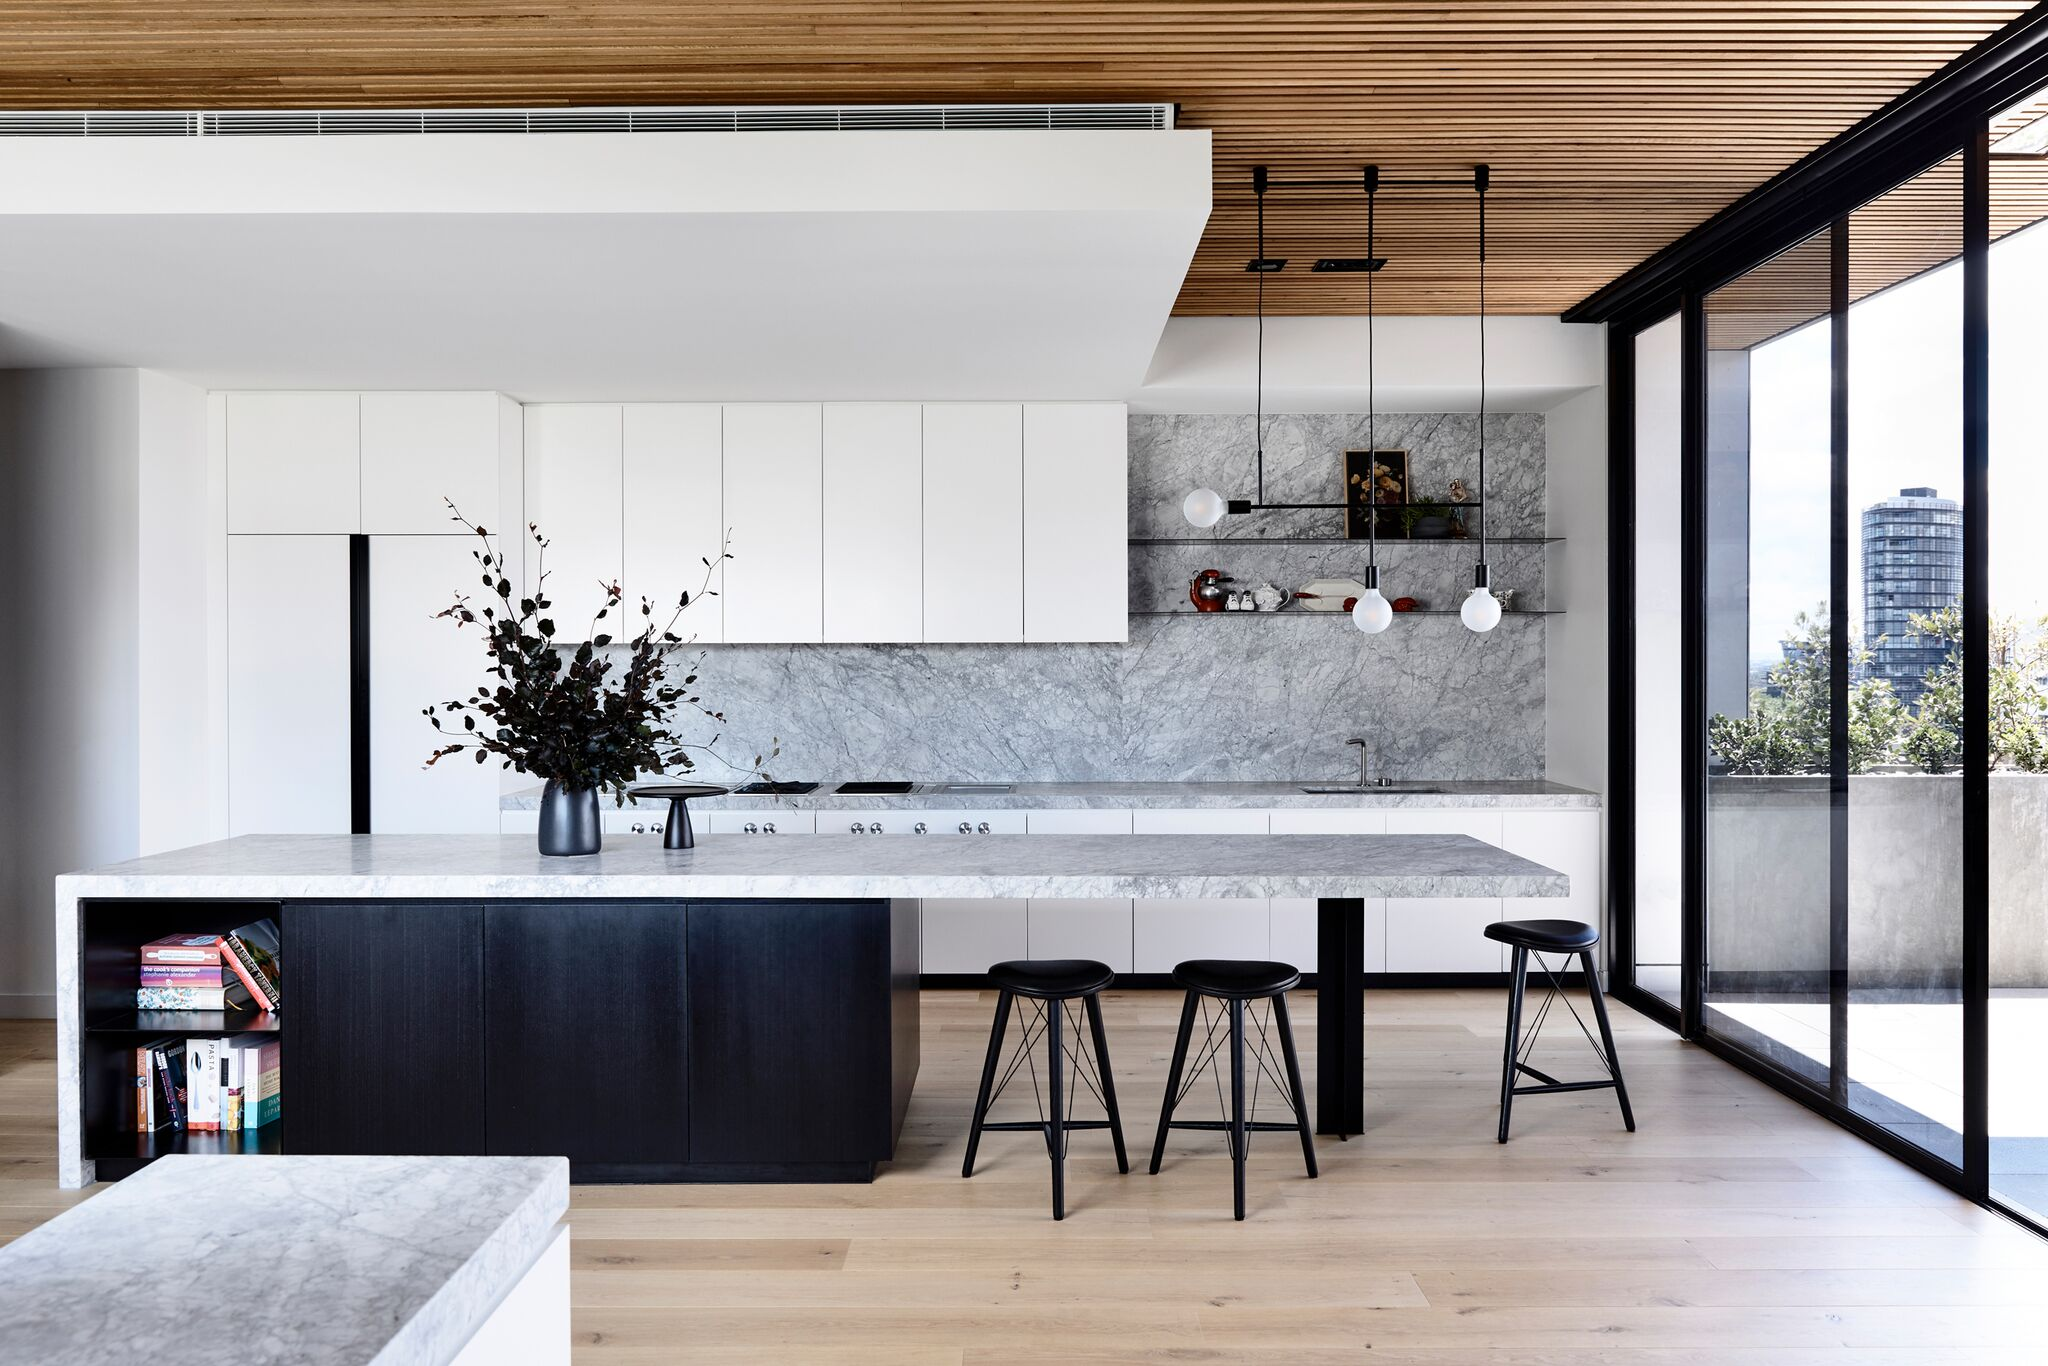 Gallery Of Holly Penthouse By Tom Robertson Architects Local Australian Architecture & Design Melbourne, Vic Image 1